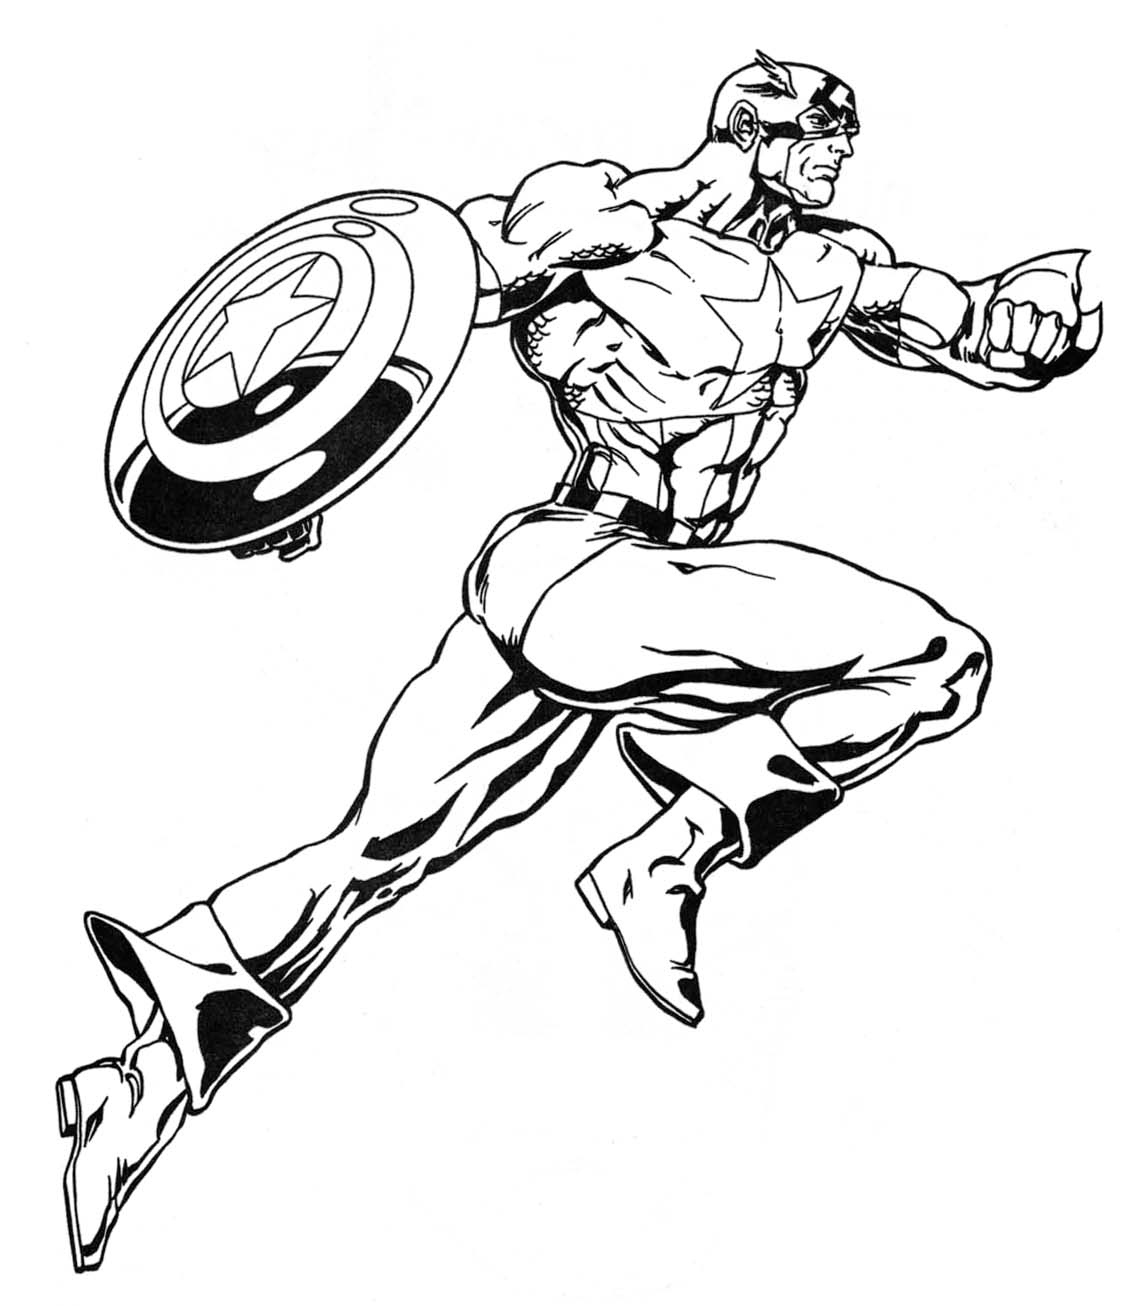 coloring sheet superhero marvel coloring pages kidsuki sheet superhero coloring